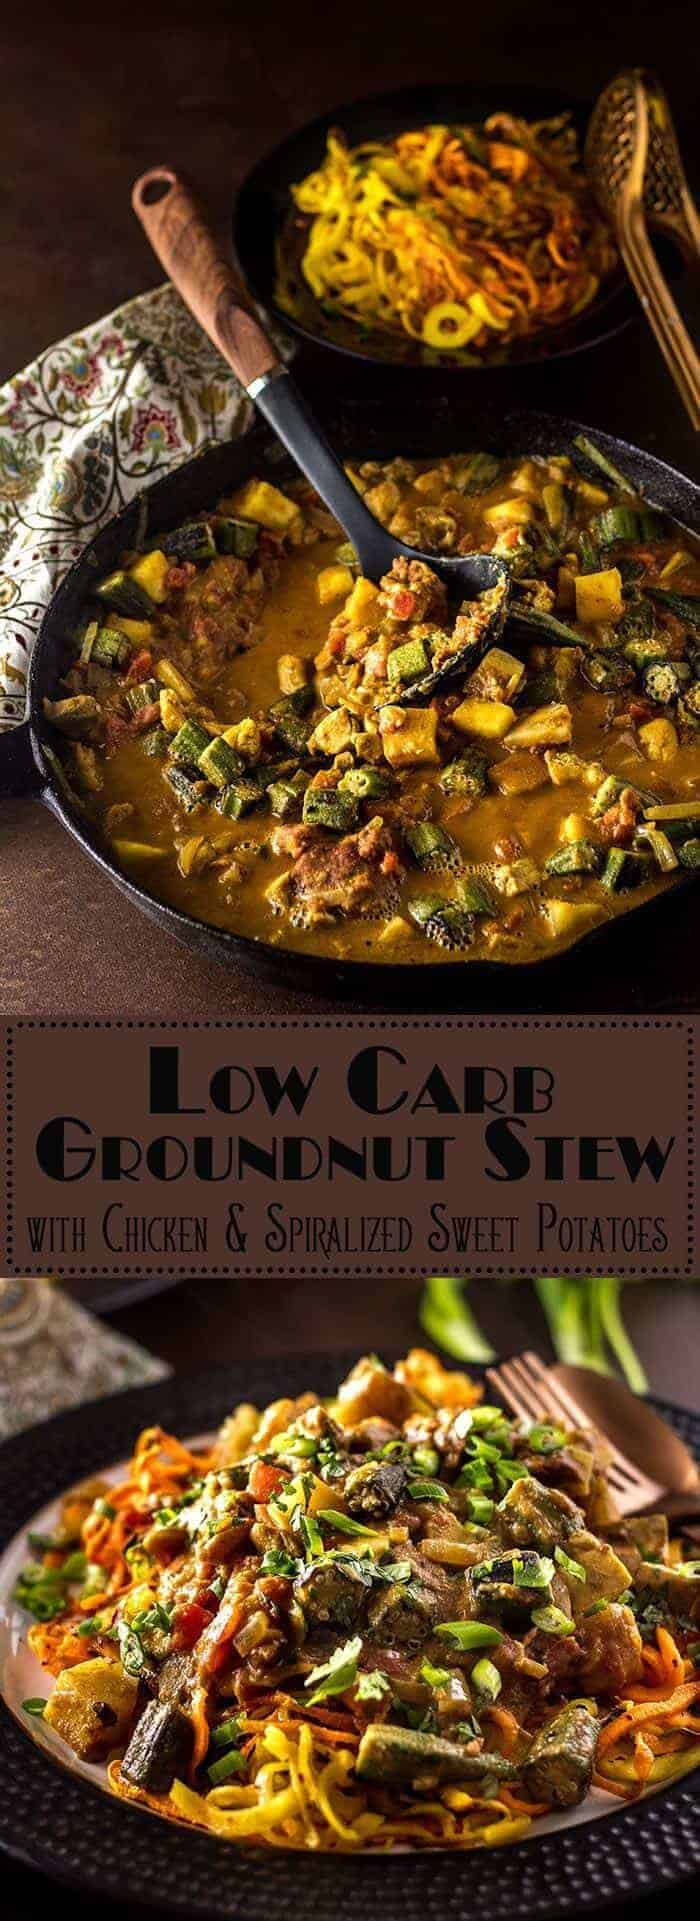 Creamy, spicy, savory, with a touch of sweetness,  Low Carb Groundnut Stew with Chicken and Spiralized Sweet Potatoes hits the flavor notes of a traditional West African groundnut stew in a less traditional fashion. Spiralized sweet potatoes make a perfect base for this healthy, flavorful stew, and it can be on your table in less than 45 minutes! groundnut stew | low carb main dishes | low carb chicken | spiralized sweet potatoes | chicken and peanut stew